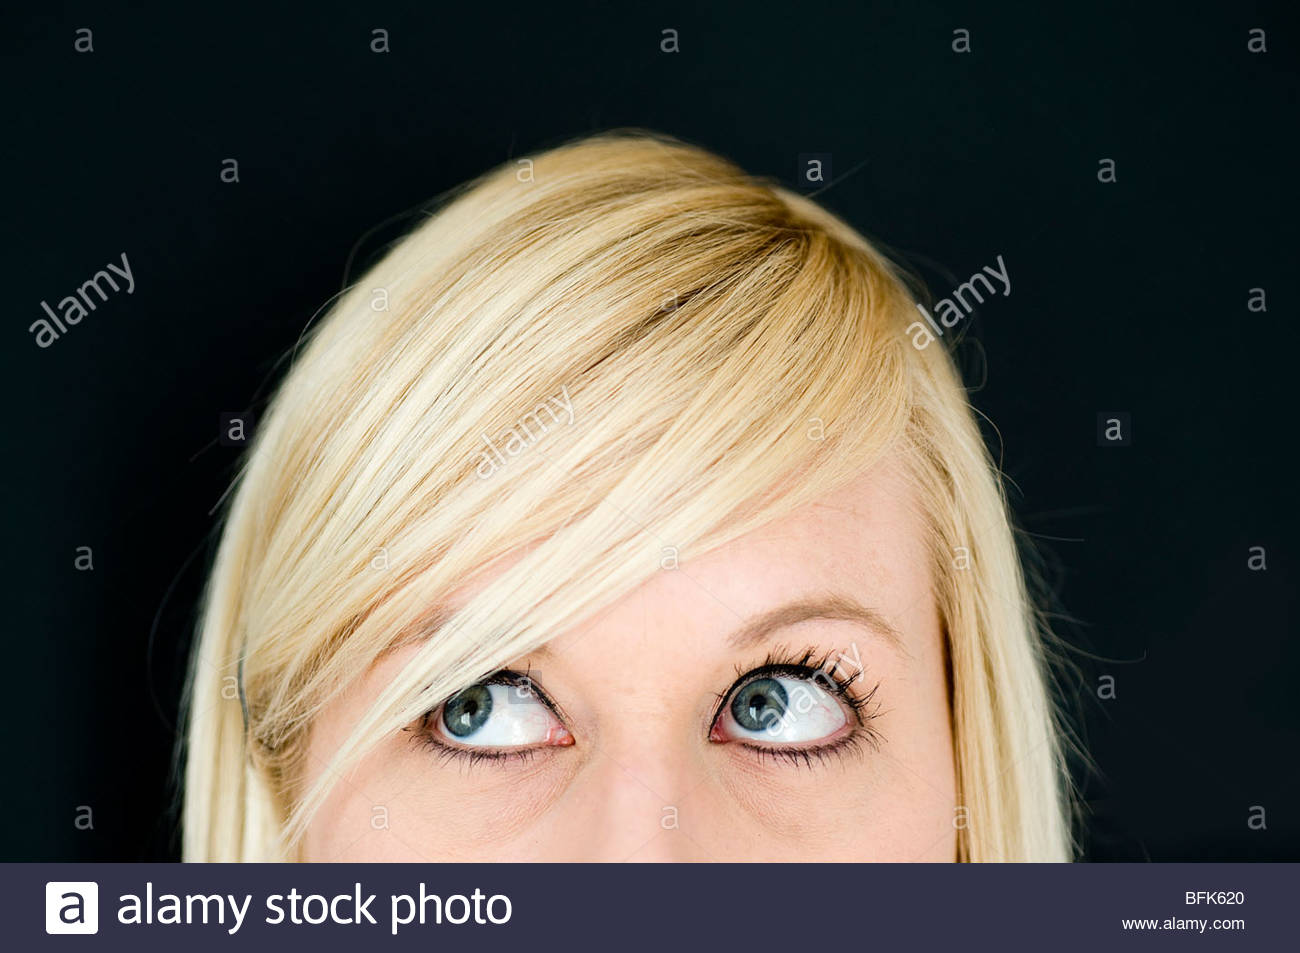 Blonde woman looking left - Stock Image